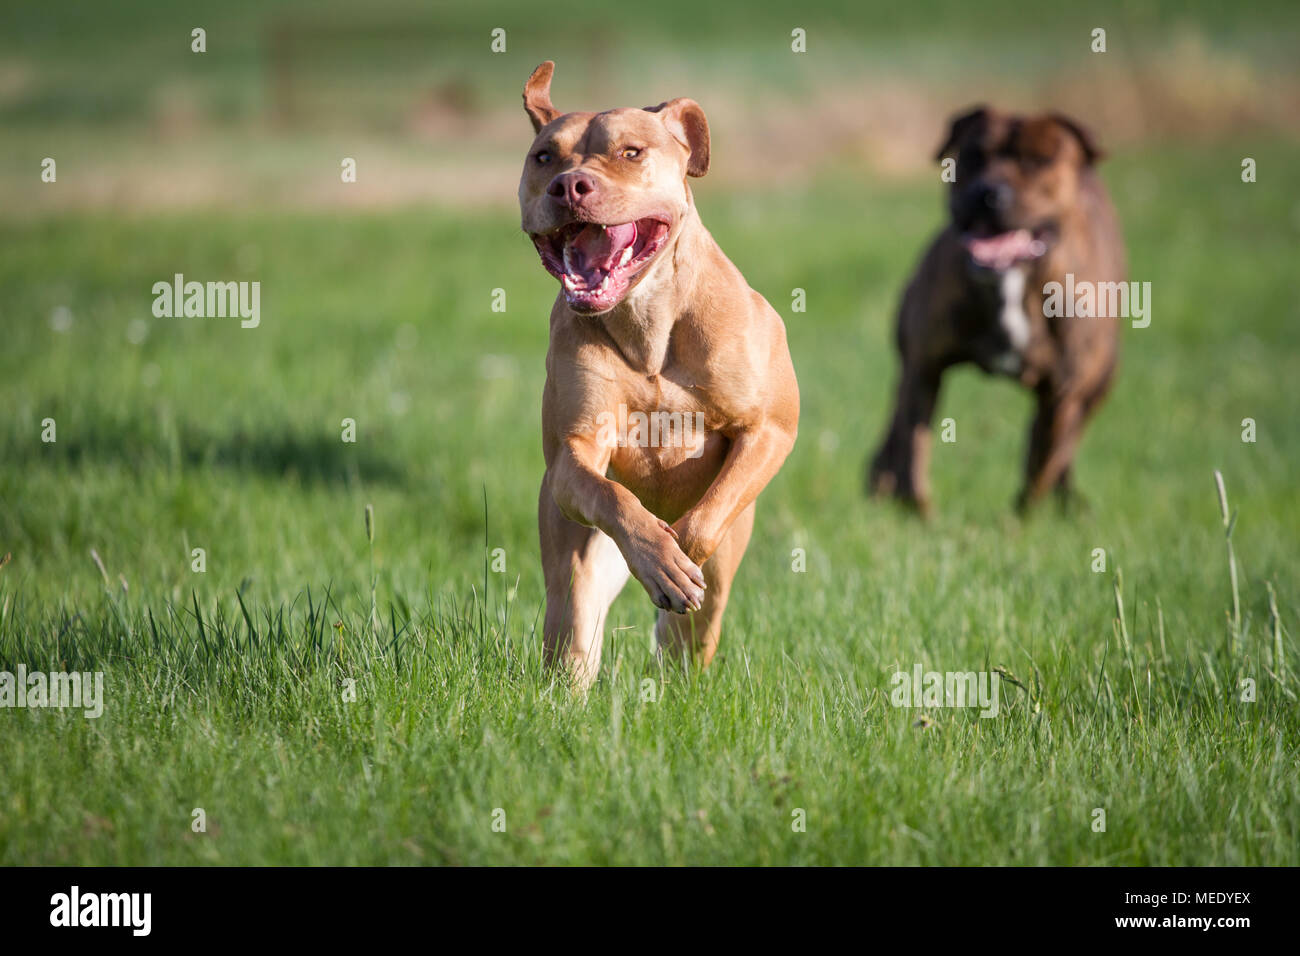 Working Pit Bulldog running on a meadow on a sunny spring day - Stock Image